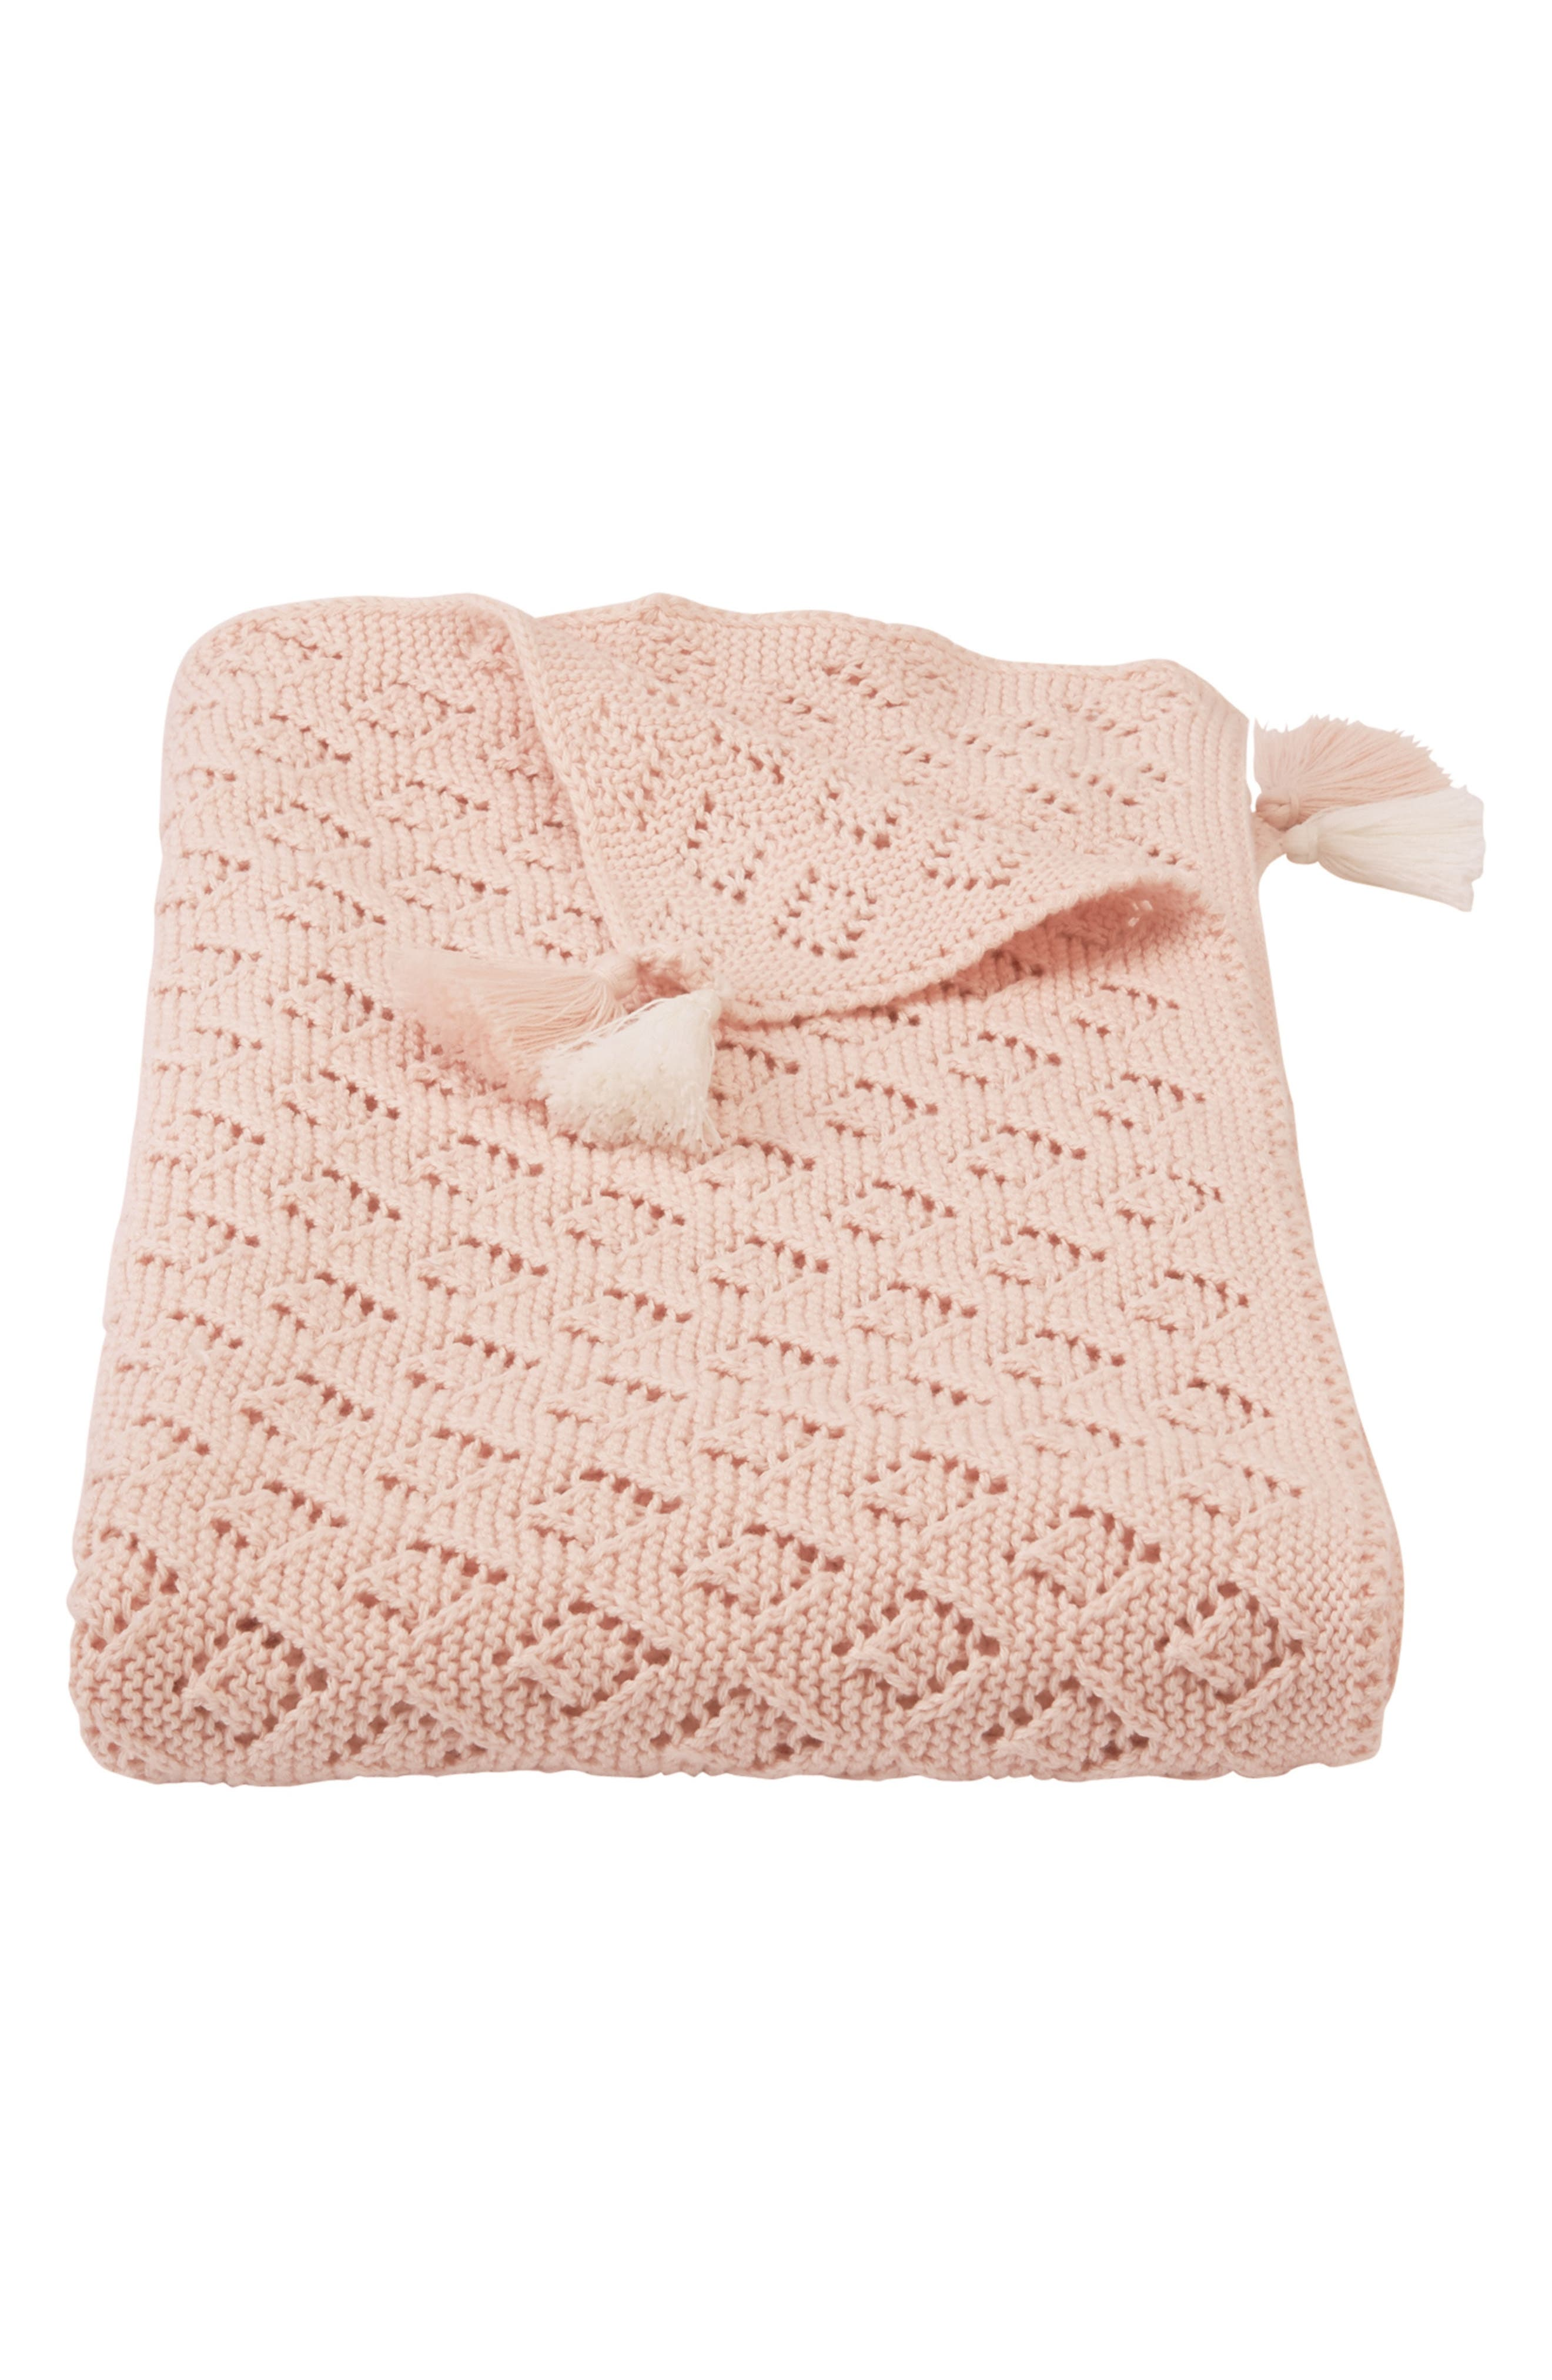 Pointelle Knit Blanket,                         Main,                         color, 650